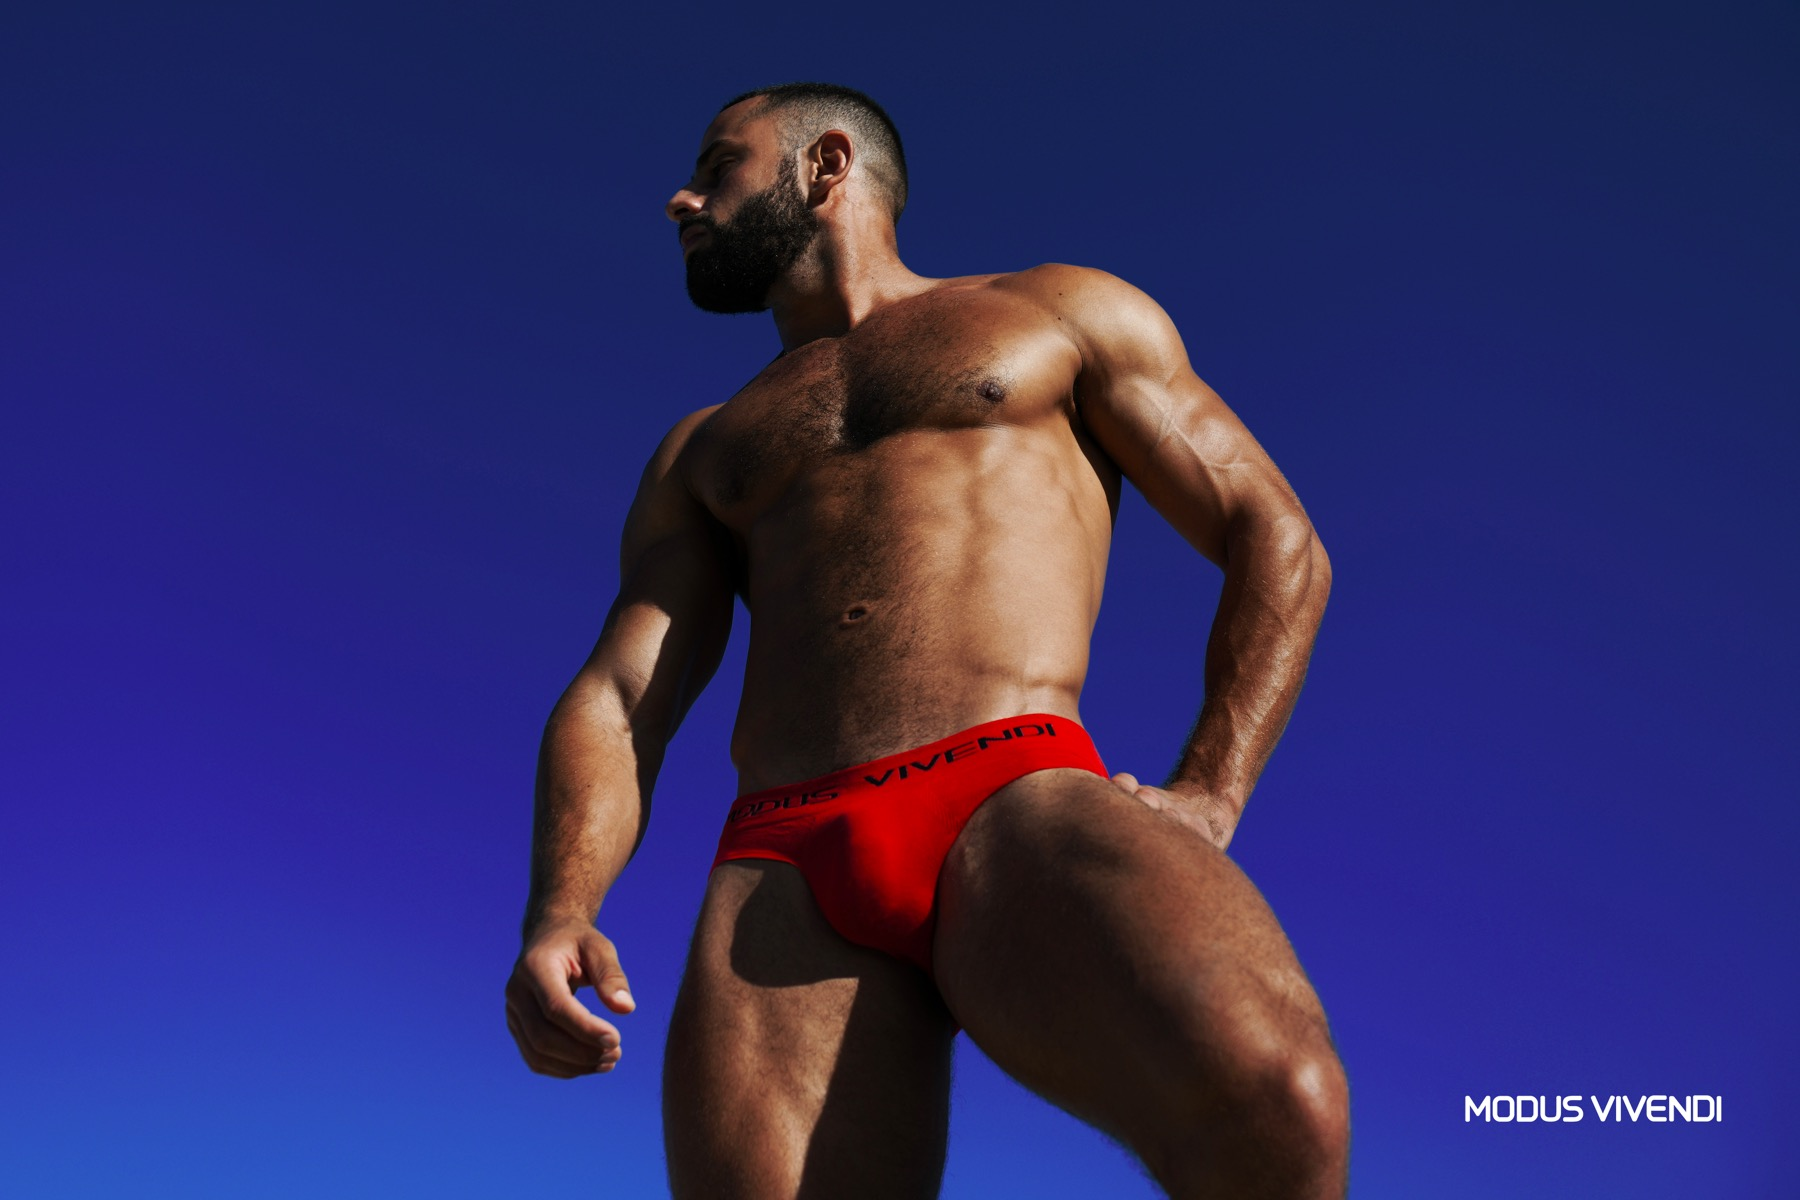 Modus Vivendi Launches the Seamless underwear Line